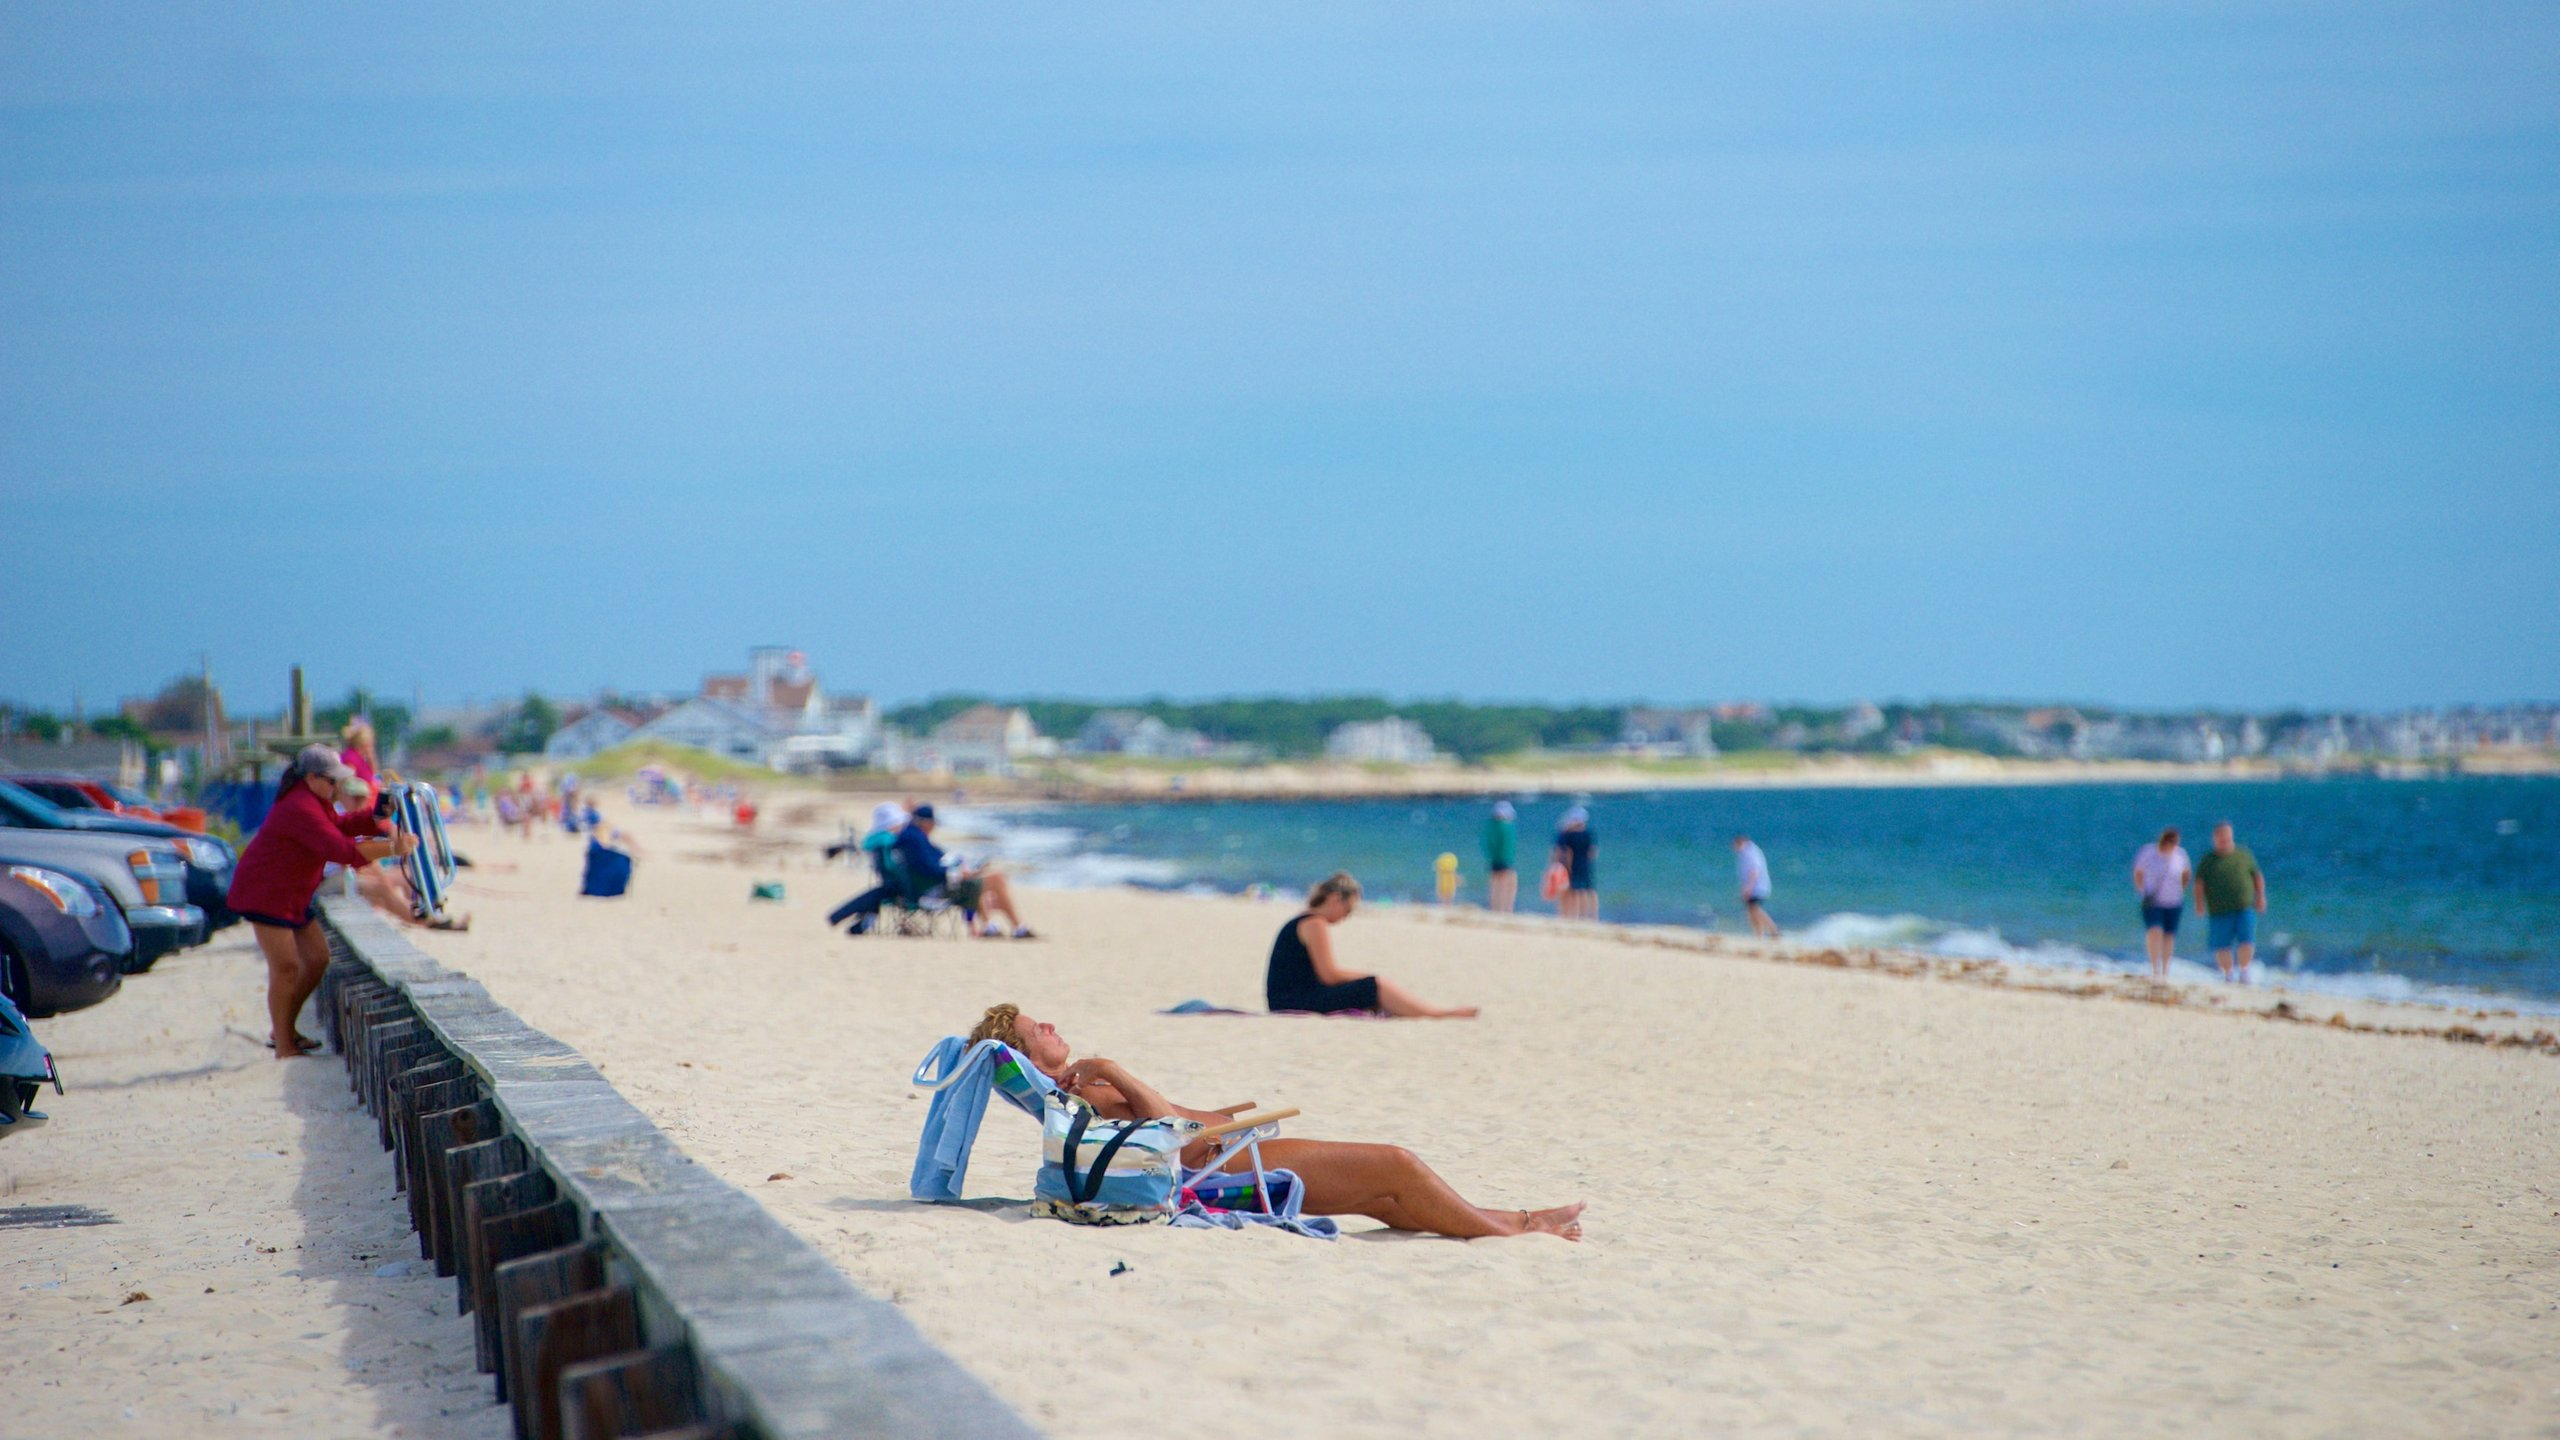 One of the most popular beaches in Dennis, this part of Cape Cod is vast and has the perfect weather for a range of land-based and offshore activities.